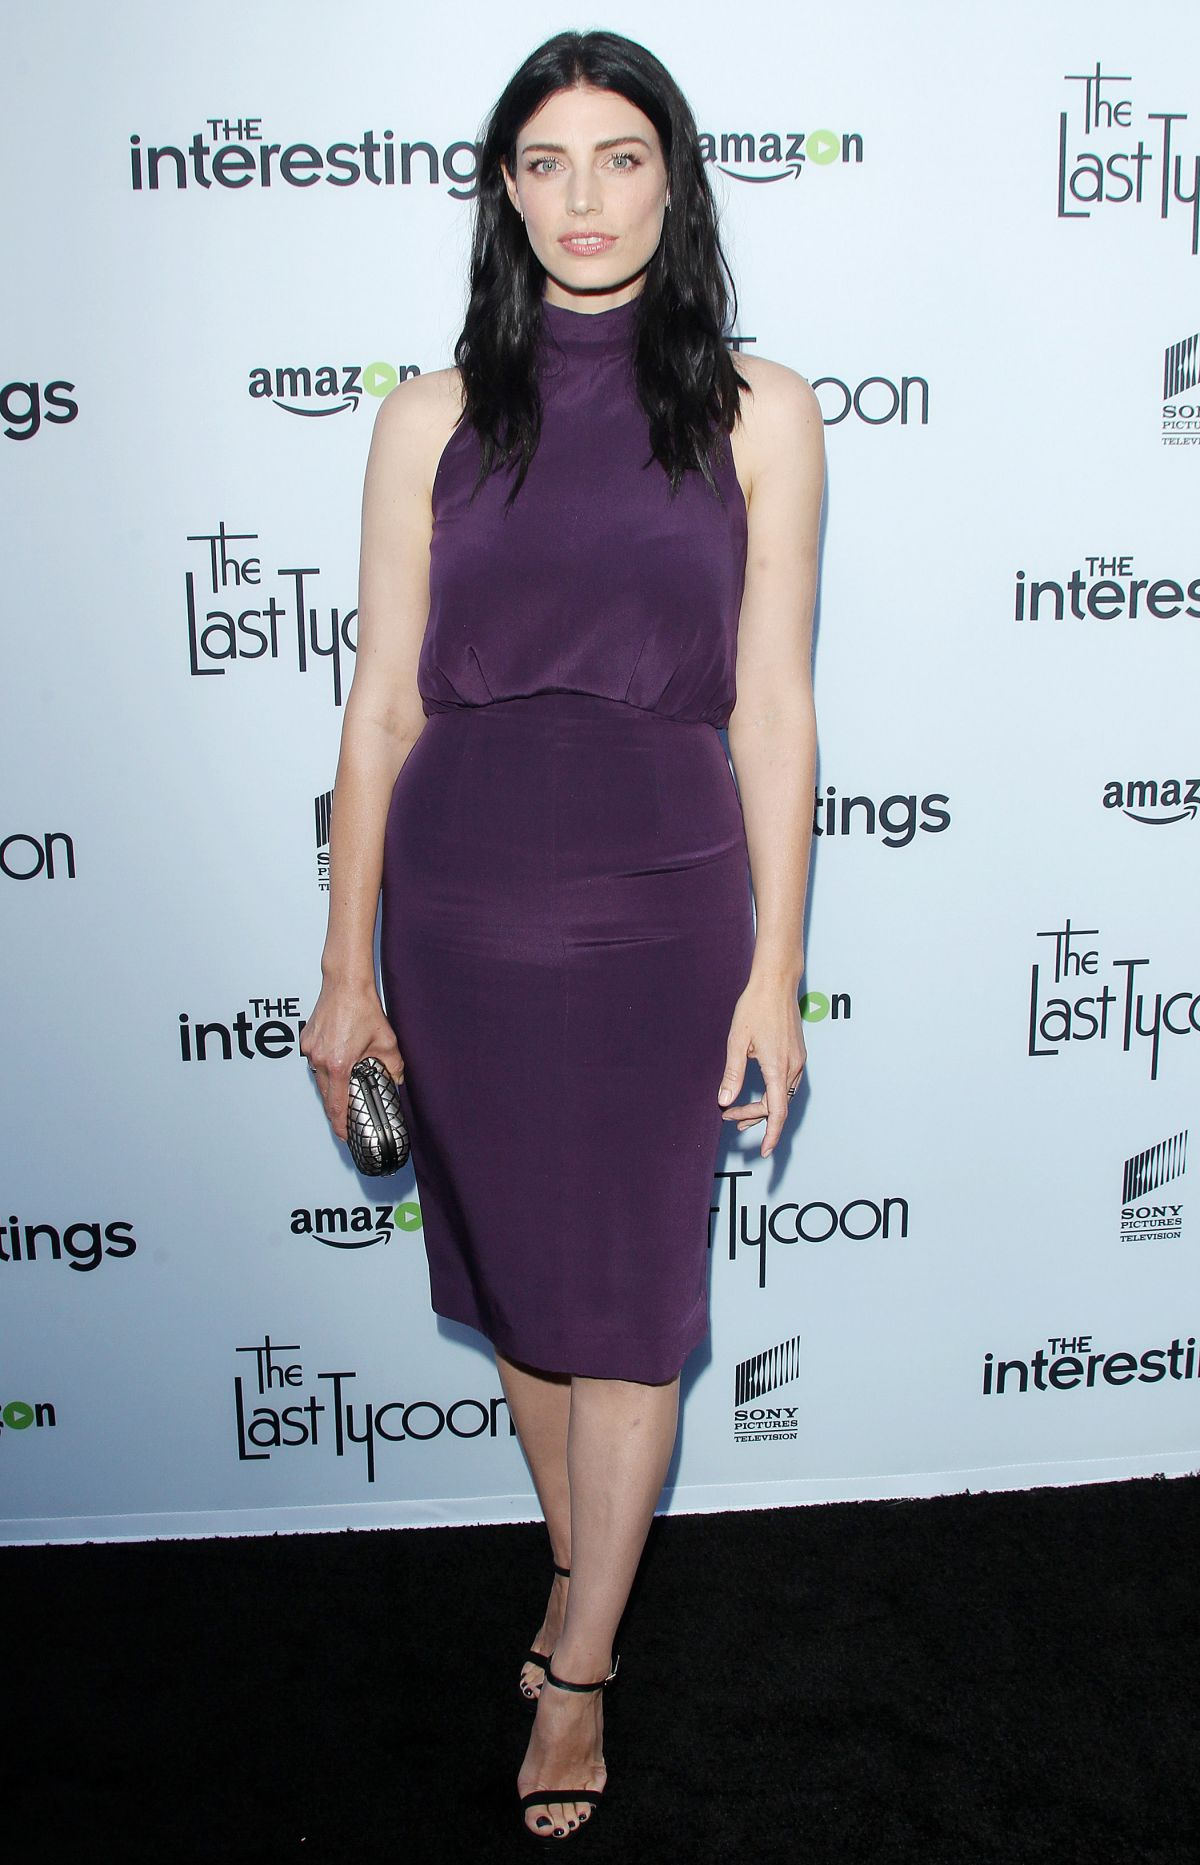 JESSICA PARE At Sony Pictures Television #socialsoiree In